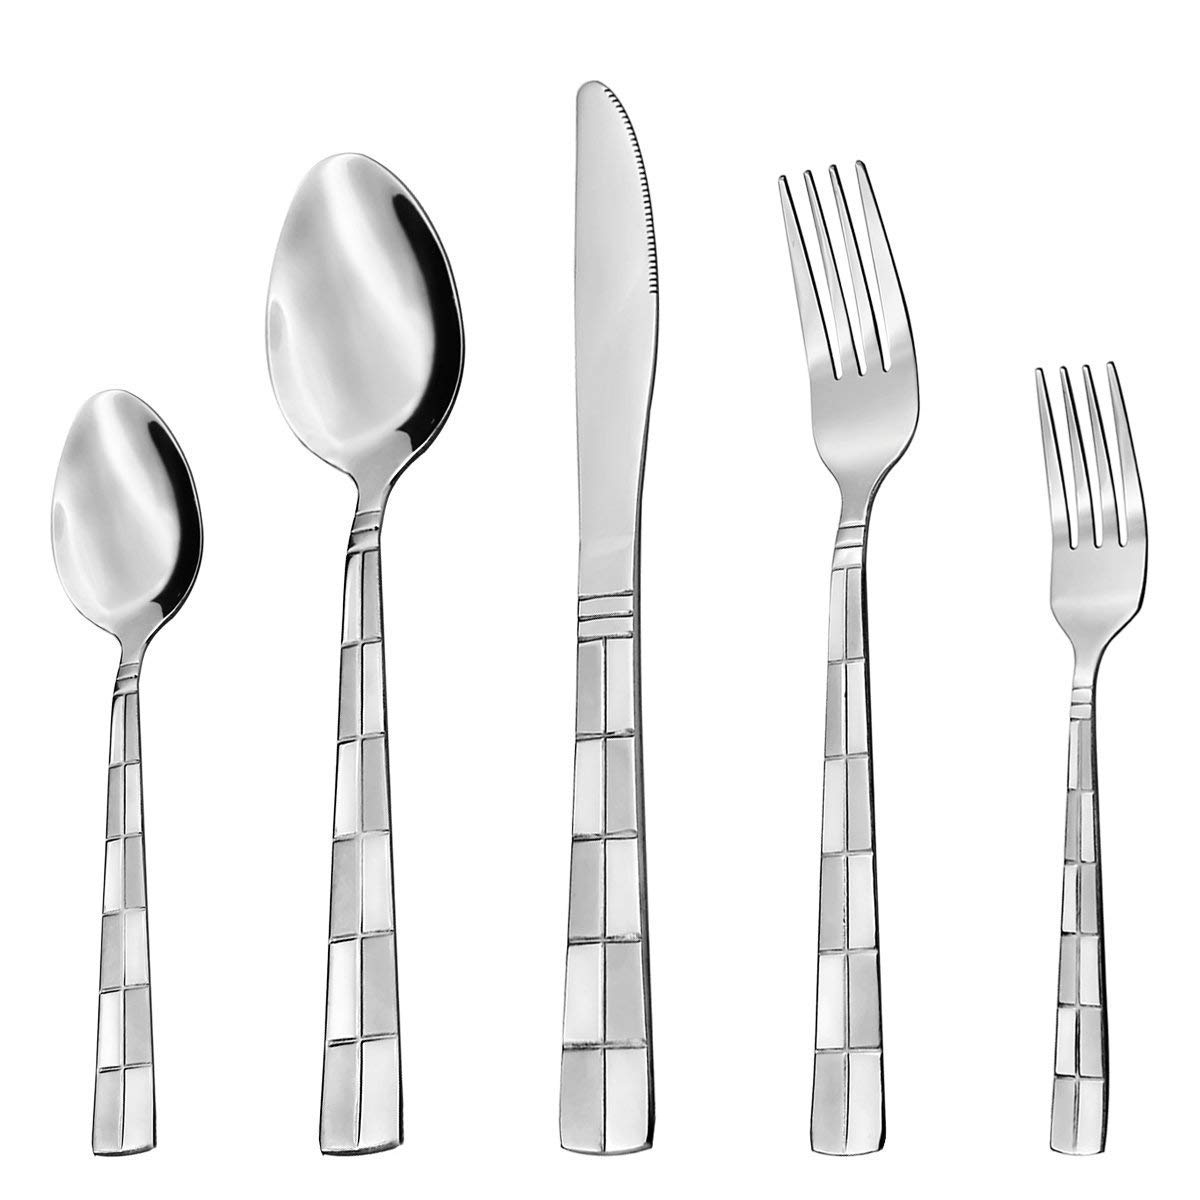 20 Piece Silverware Set, Checkered Frost Stainless Steel Flatware set Service for 4 by Hippih, Dishwasher Safe